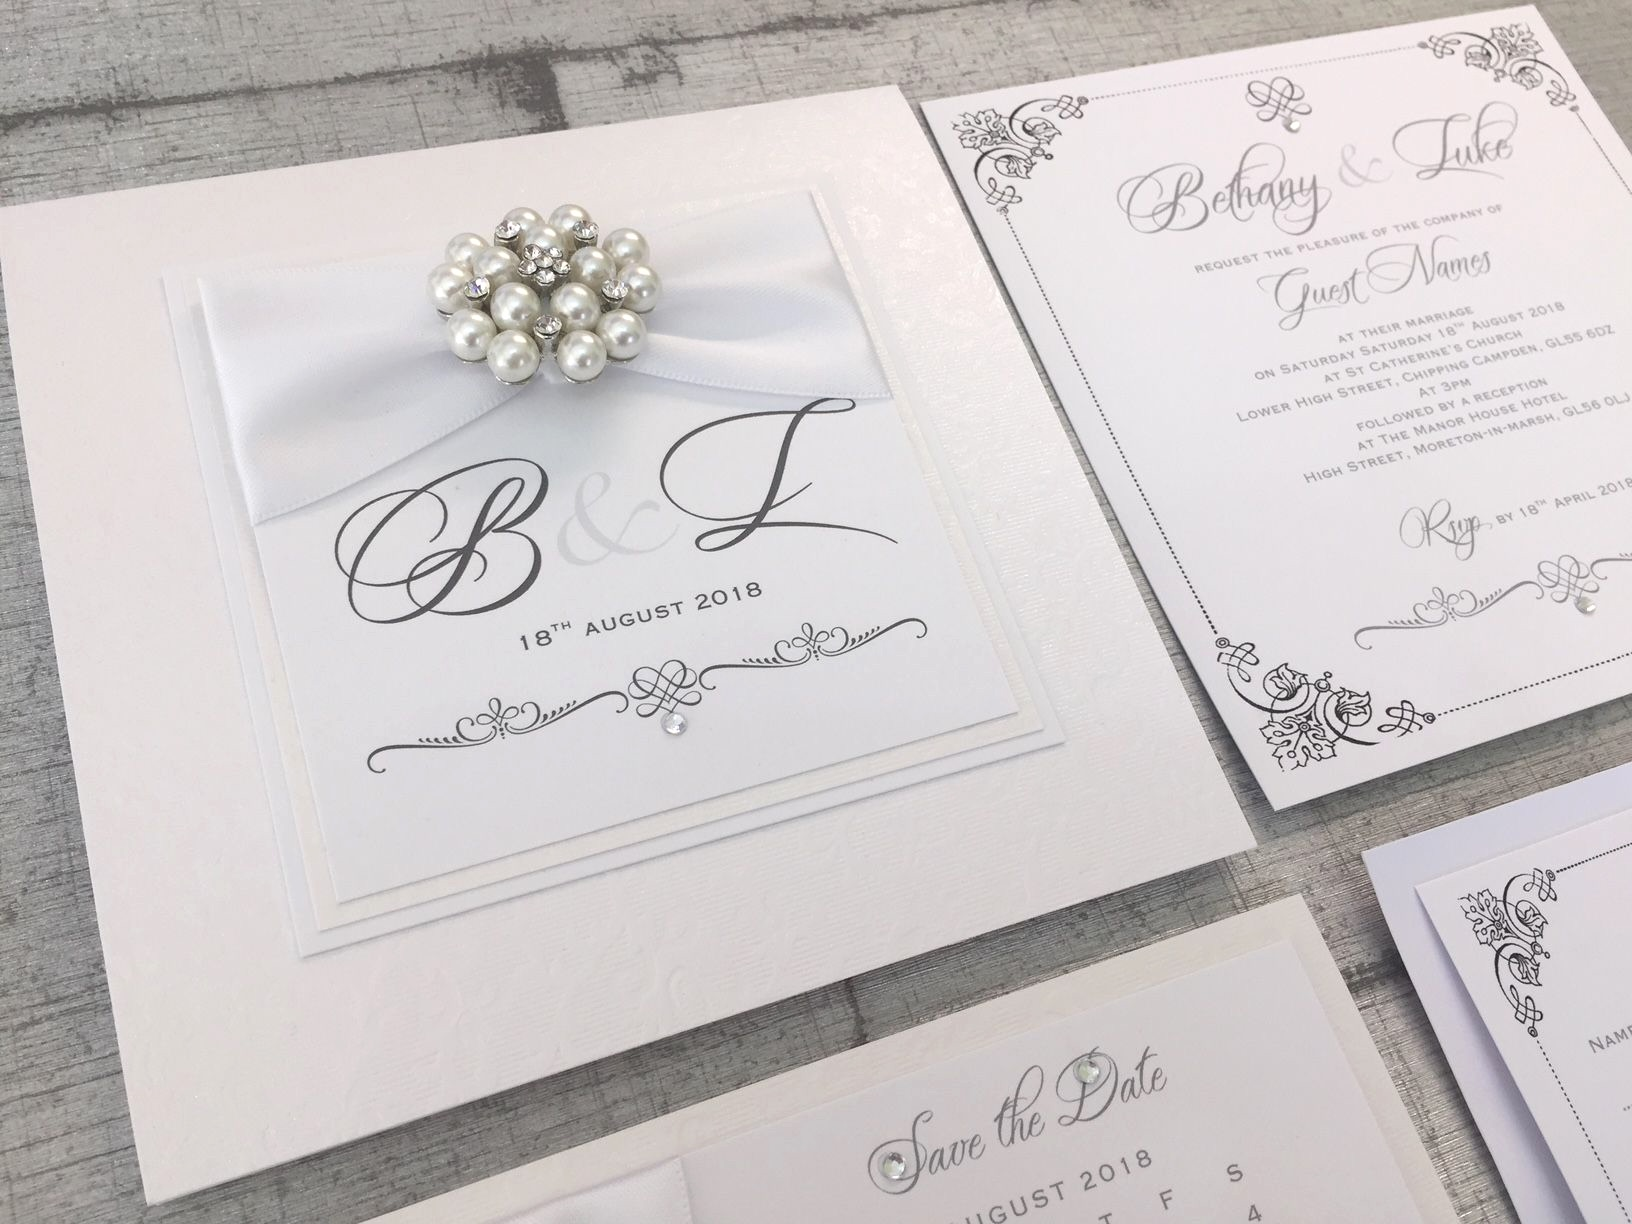 Boxed Monogram wedding invitations with white ribbon and beautiful brooch